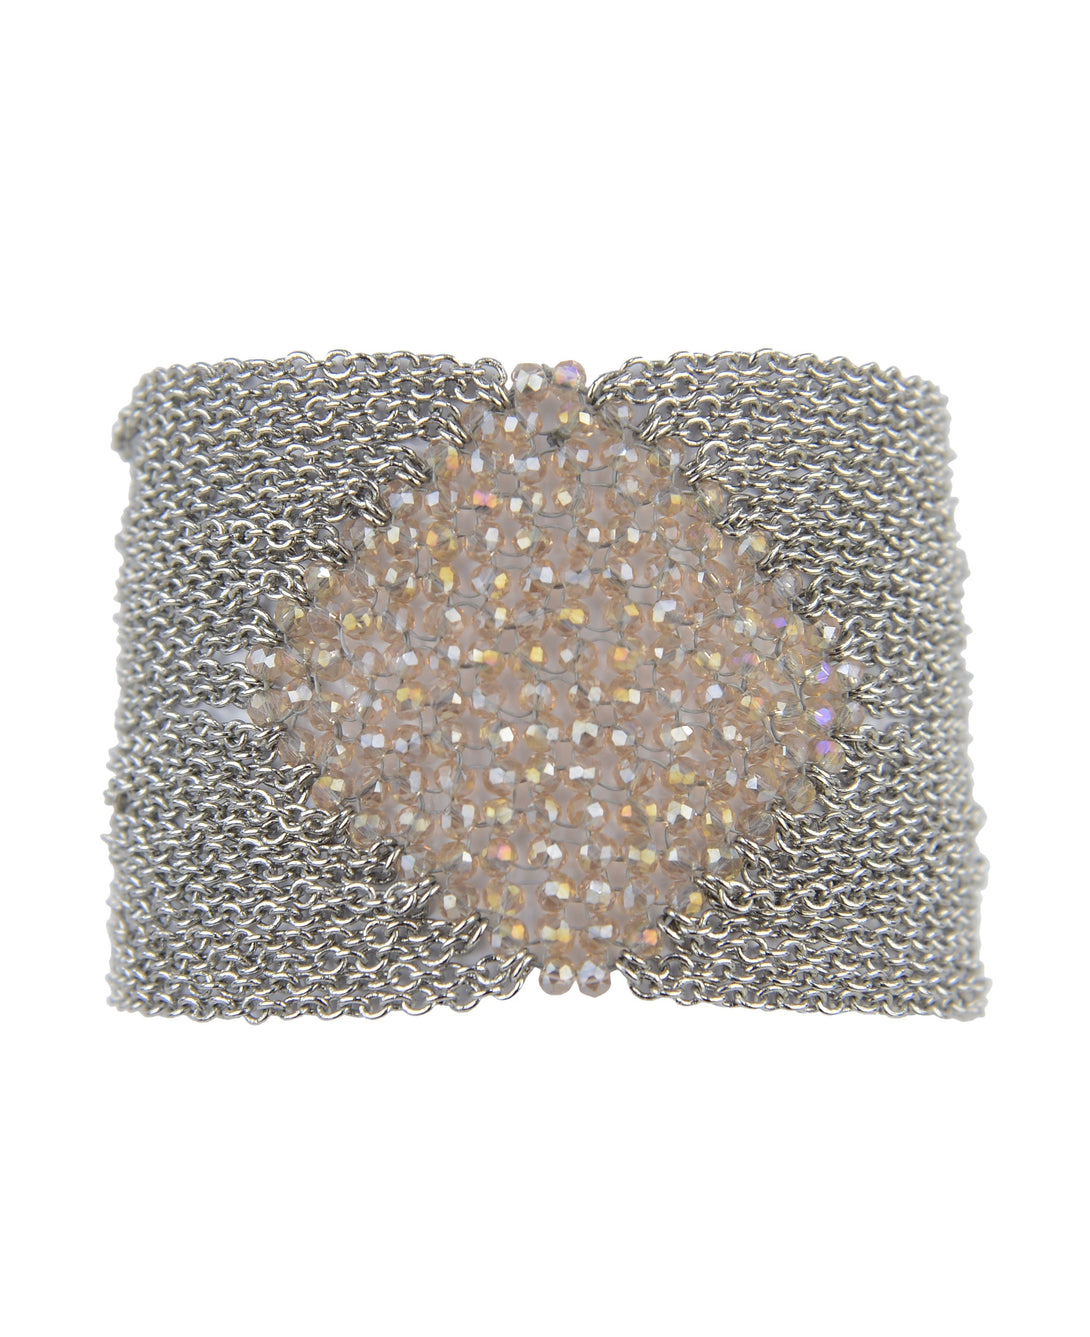 Cella Cuff With Magnetic Closure